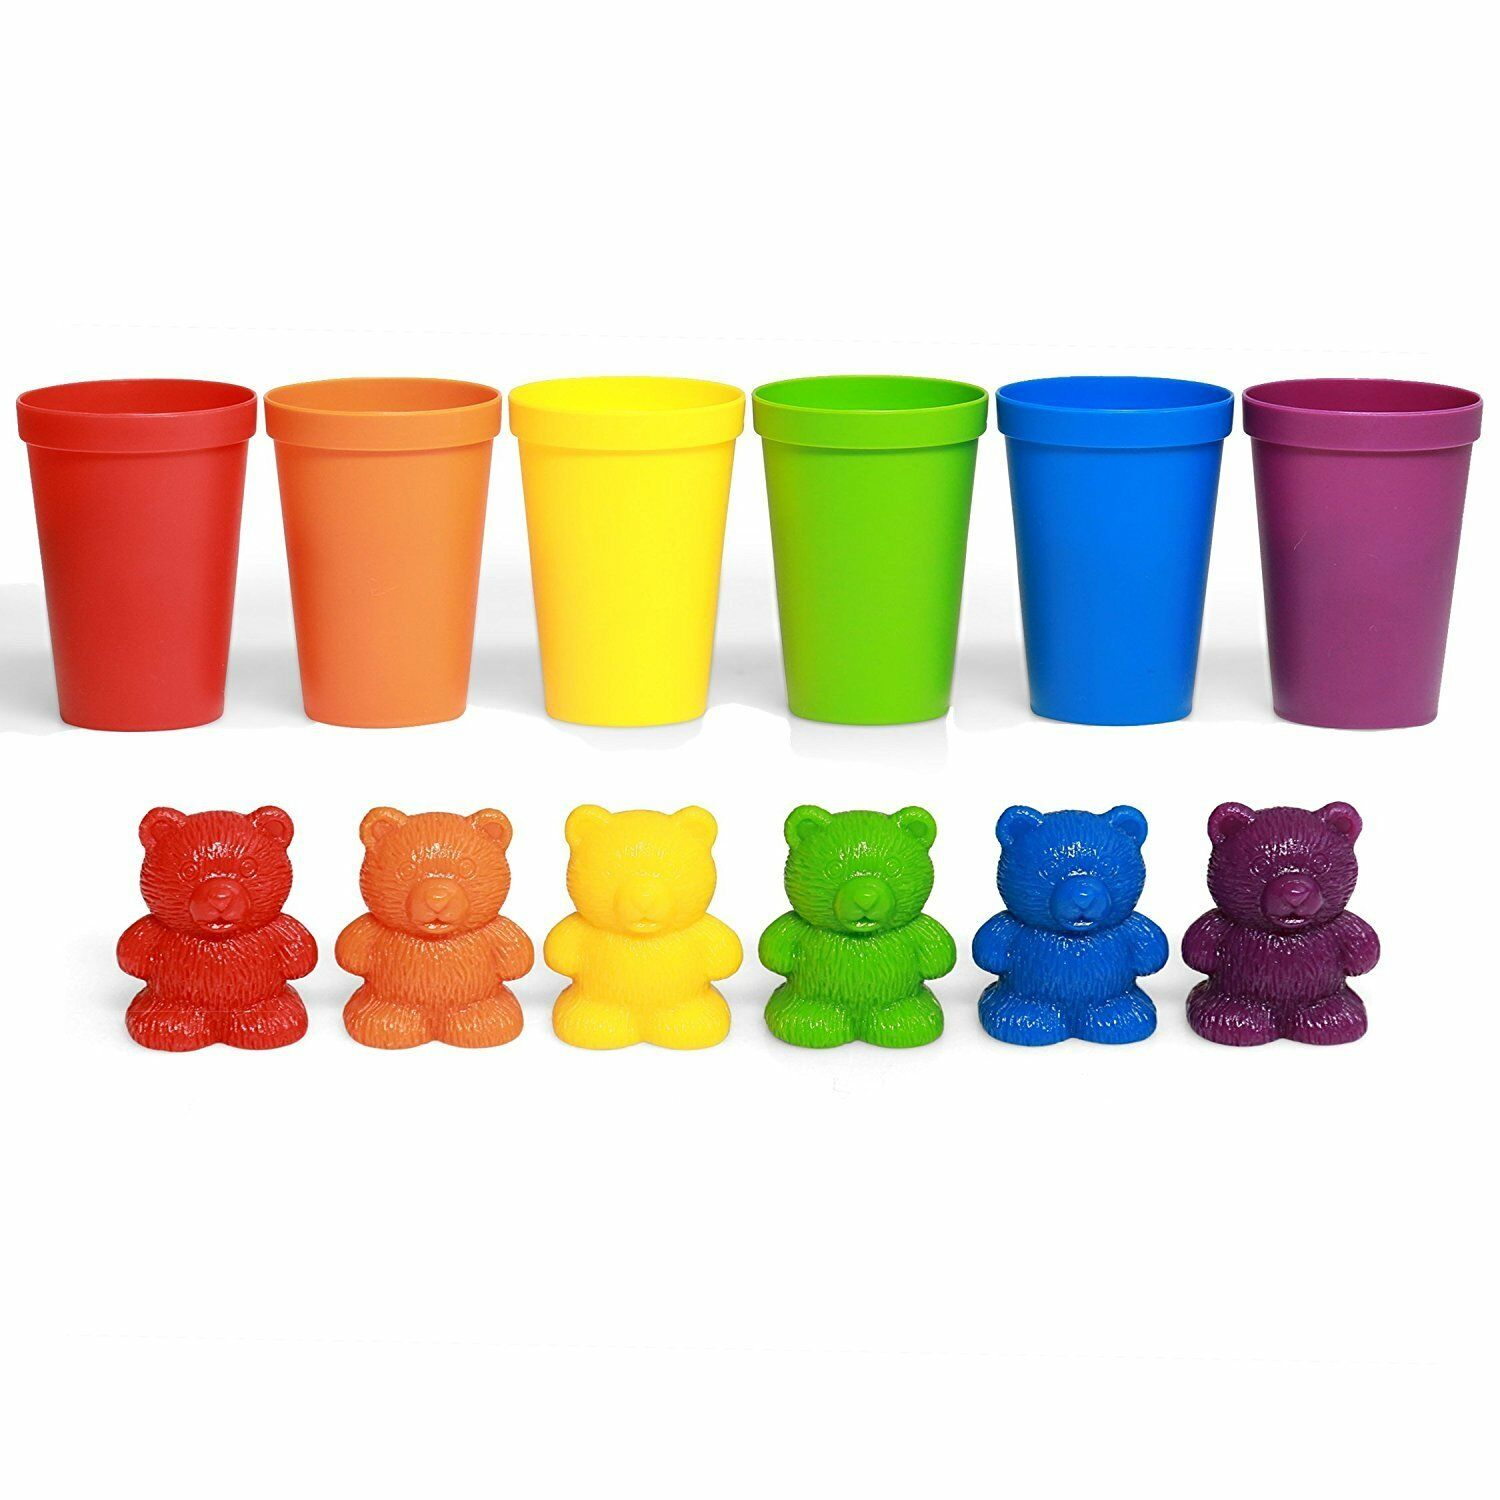 72 Rainbow Colored Counting Bears with Cup for Children Learning Education Toys 2